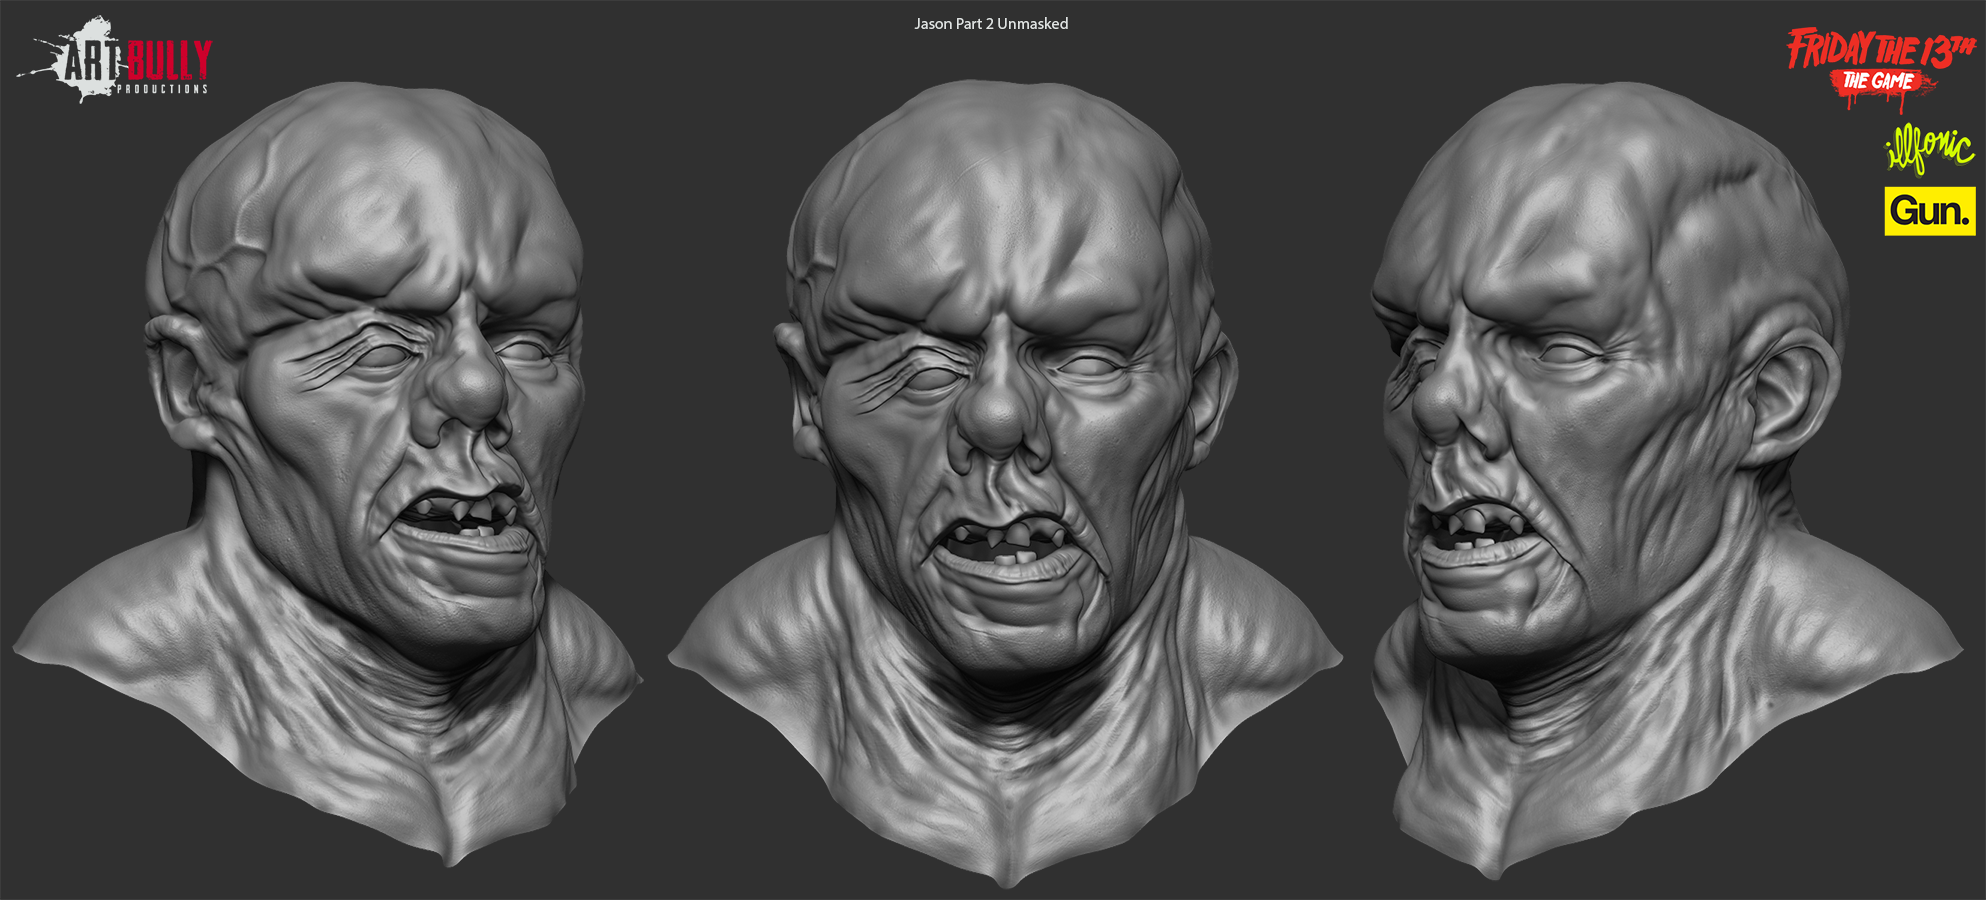 Jason_Part3_Highpoly_Unmasked_CU_01.png